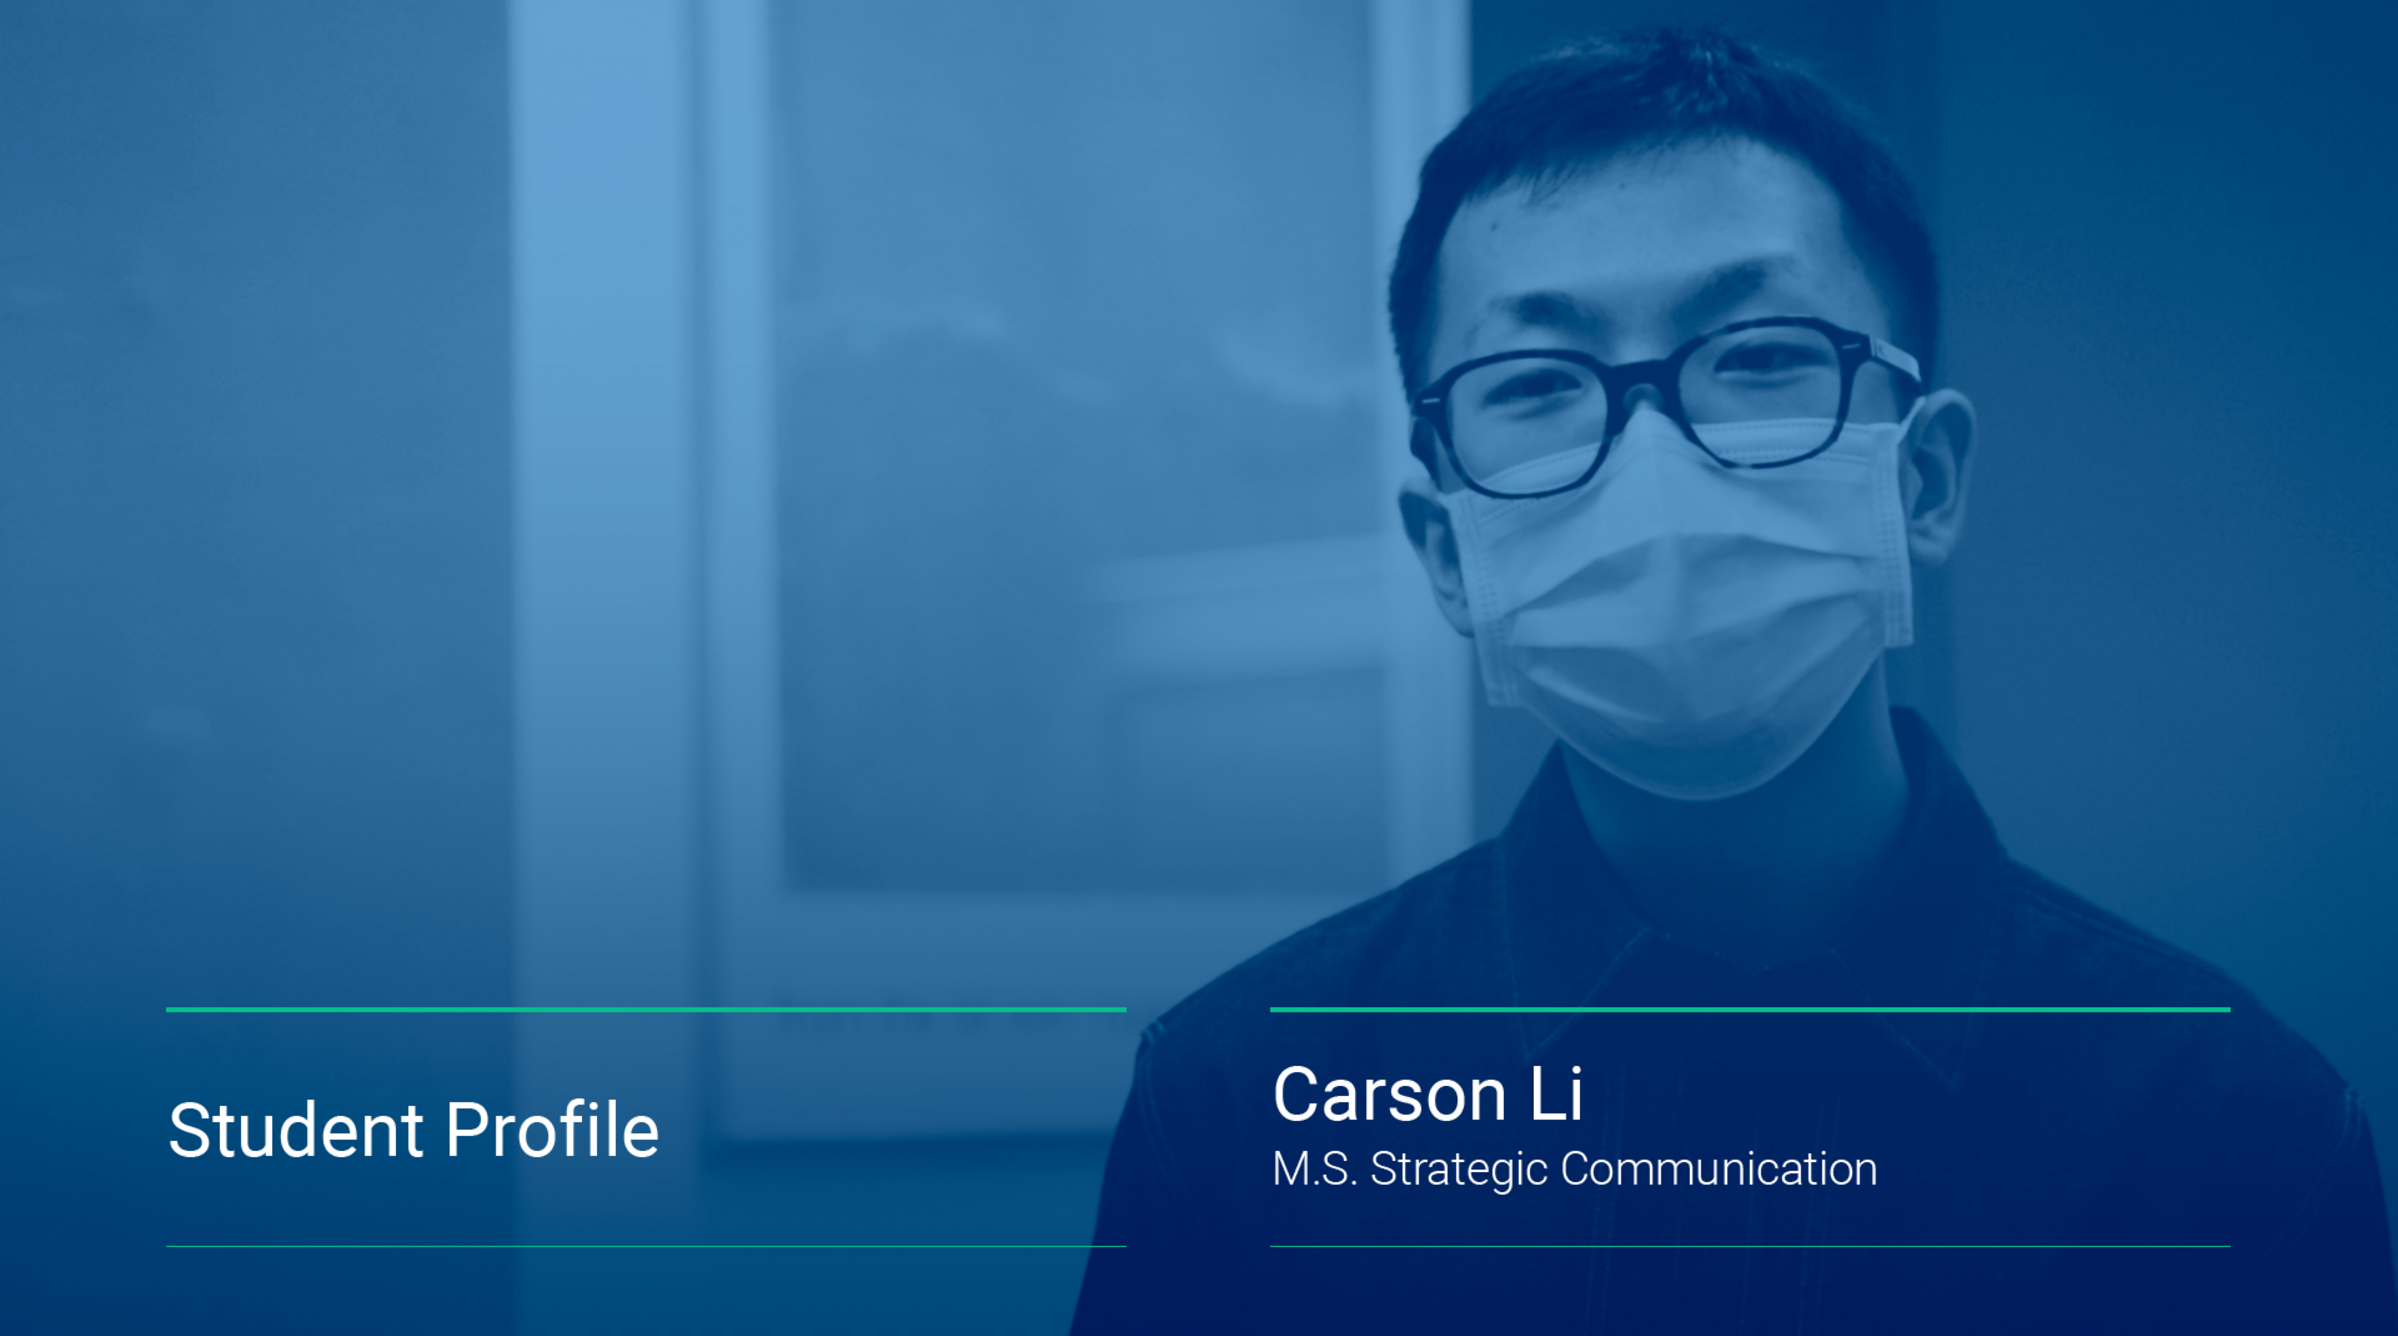 An image displays a still from a video interview featuring Carson Li, '21SPS, Strategic Communication.